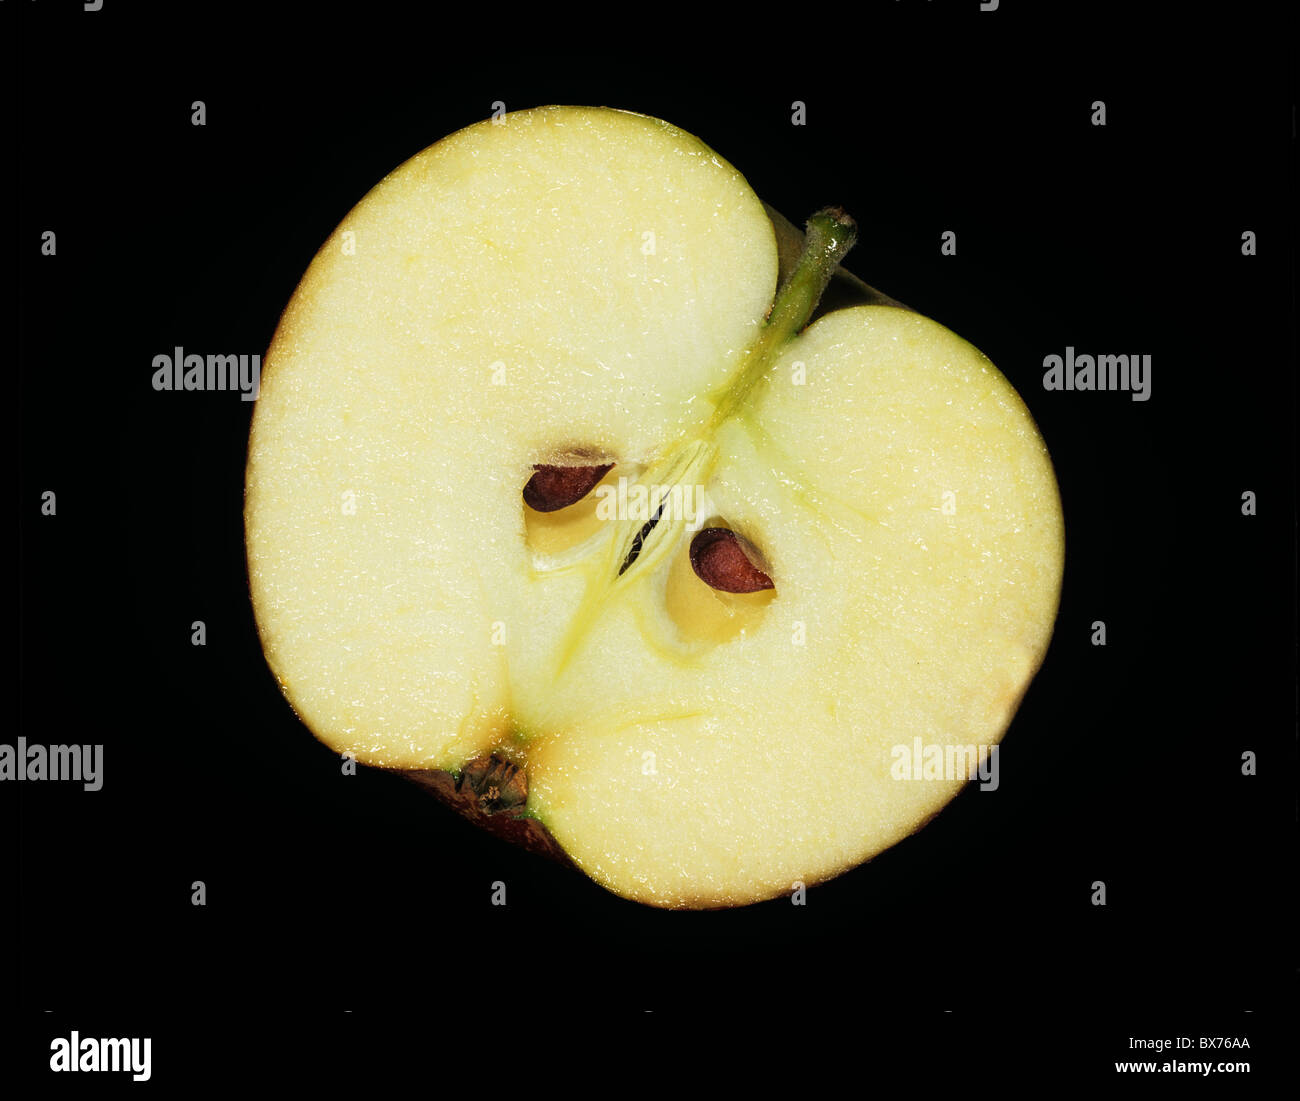 Longitudinal section through and apple to show its structure - Stock Image